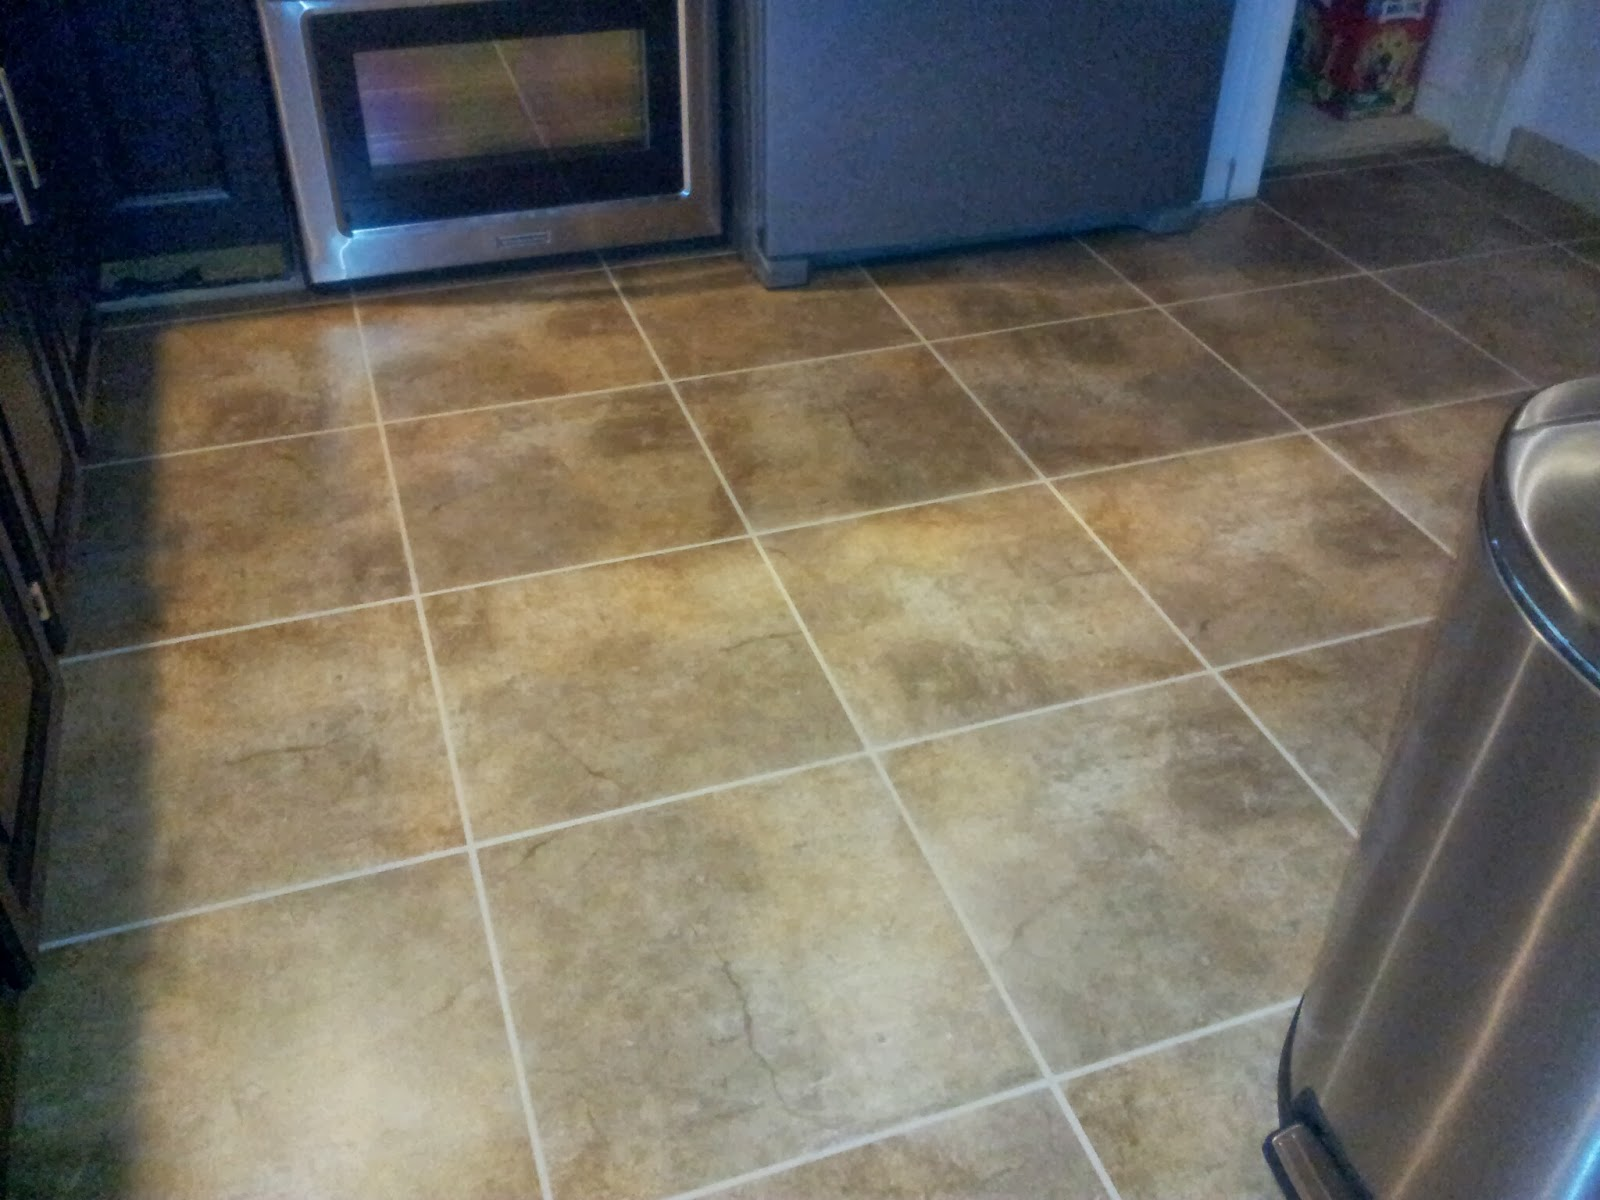 Installing snapstone kitchen floor tile for our home remodel ian kitchen tile grouting dailygadgetfo Image collections